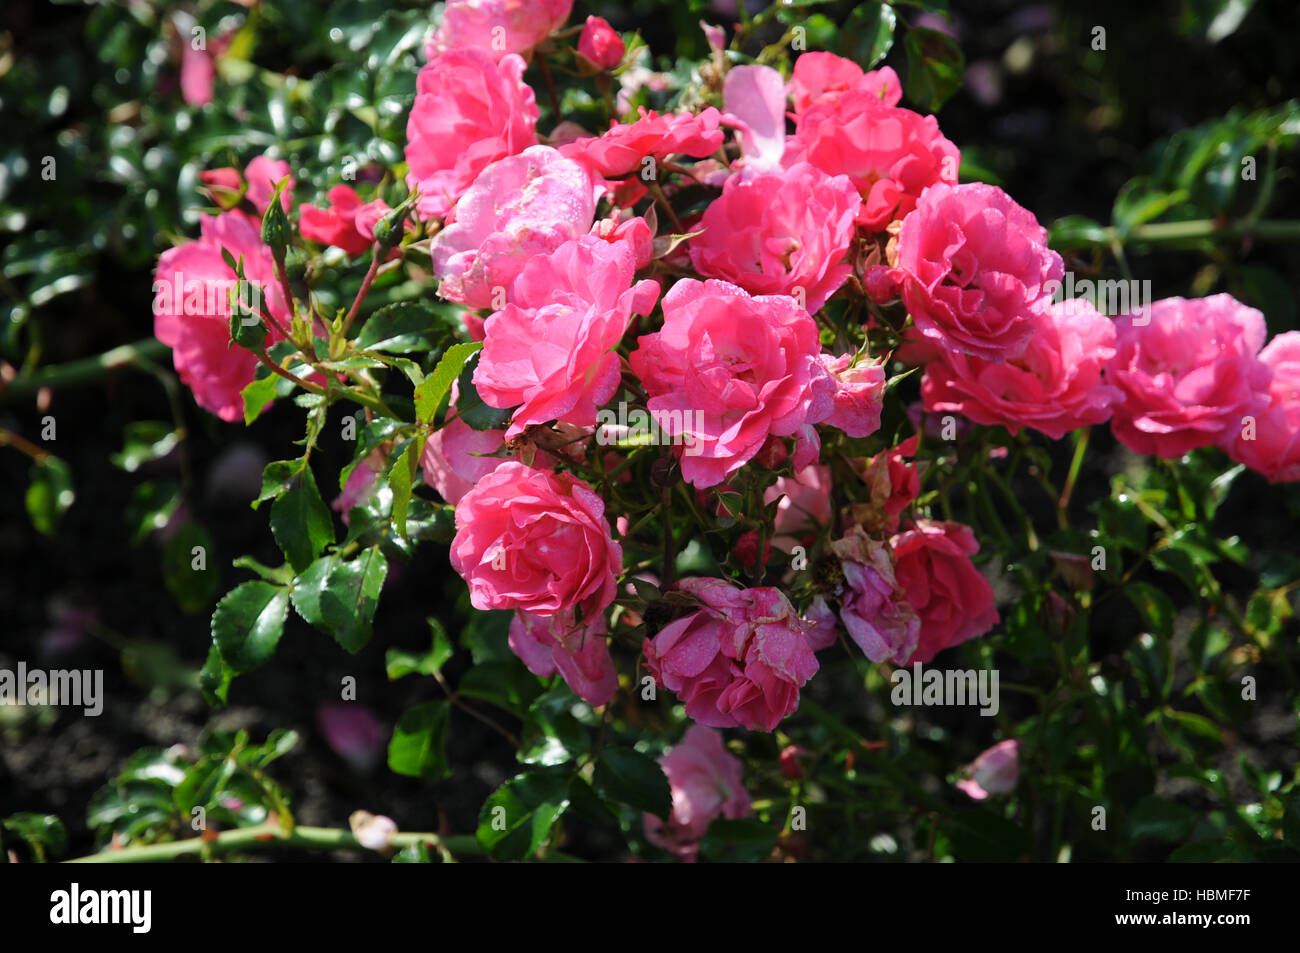 rosa heidetraum shrub rose stock photo royalty free. Black Bedroom Furniture Sets. Home Design Ideas